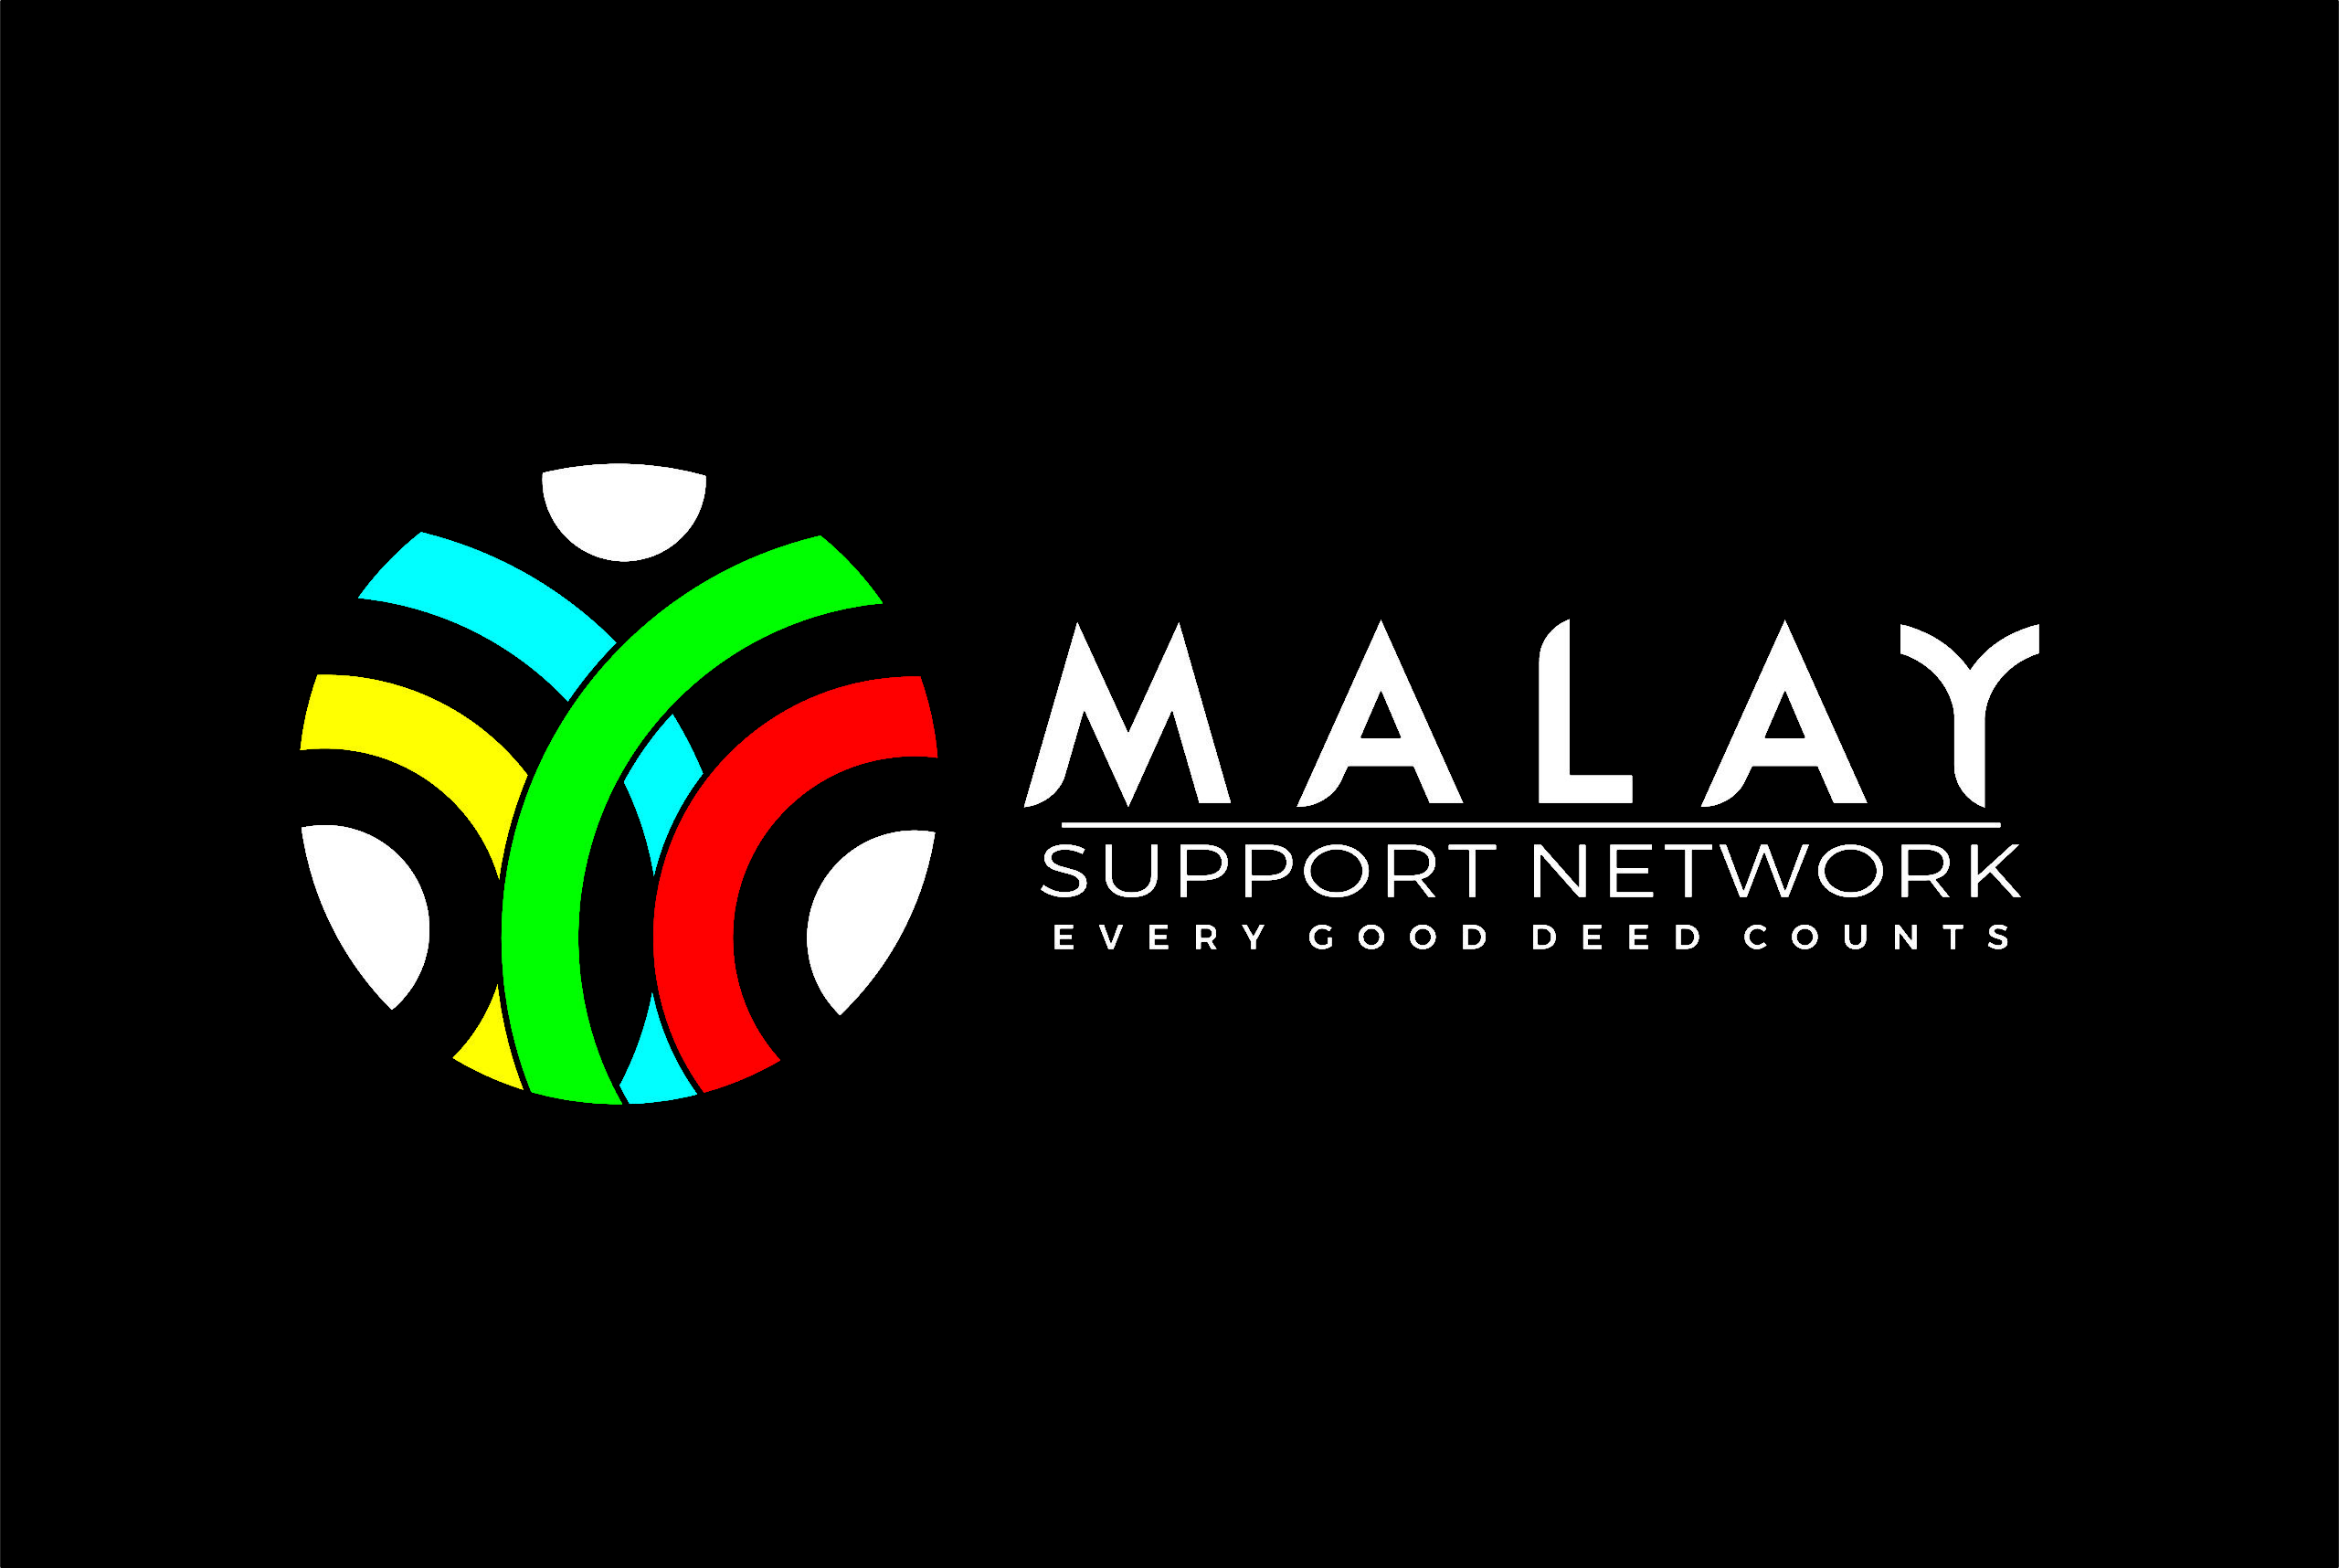 Malay Support Network